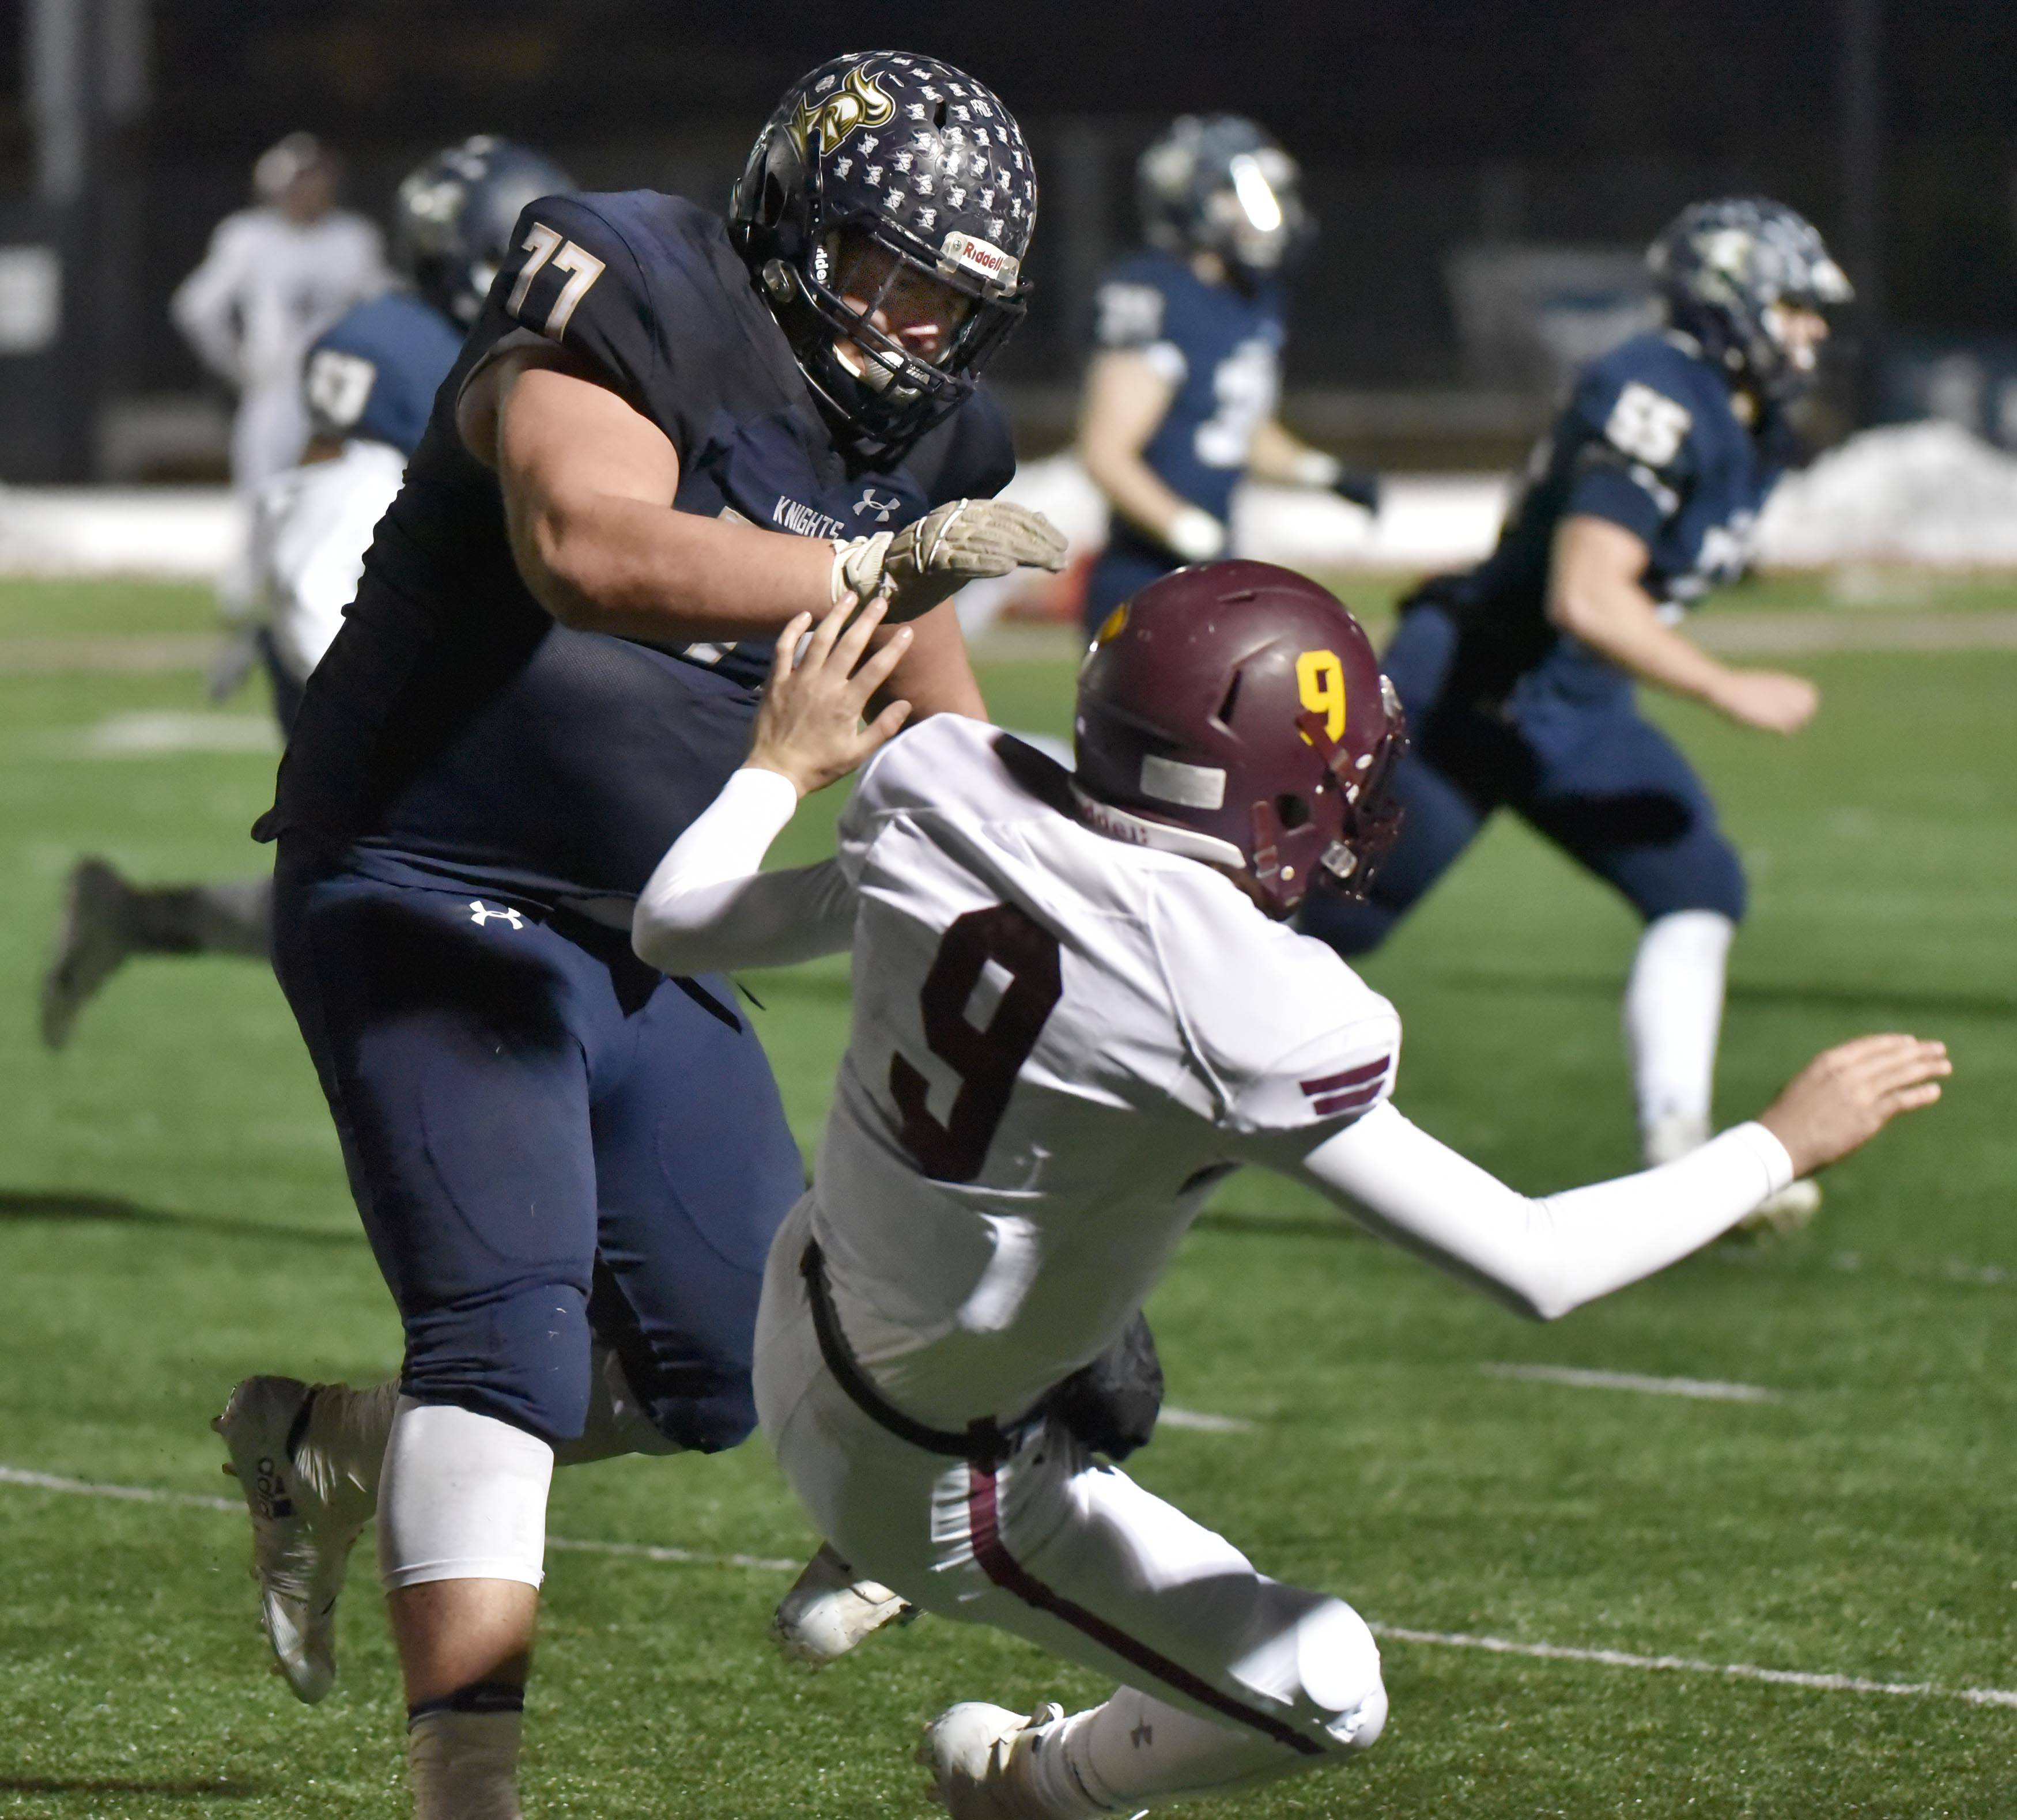 IC Catholic's Ricky Mysliwiec knocks Richmond-Burton quarterback Jacob Huber to the turf in the fourth quarter in a semifinal football playoff game Saturday in Elmhurst.